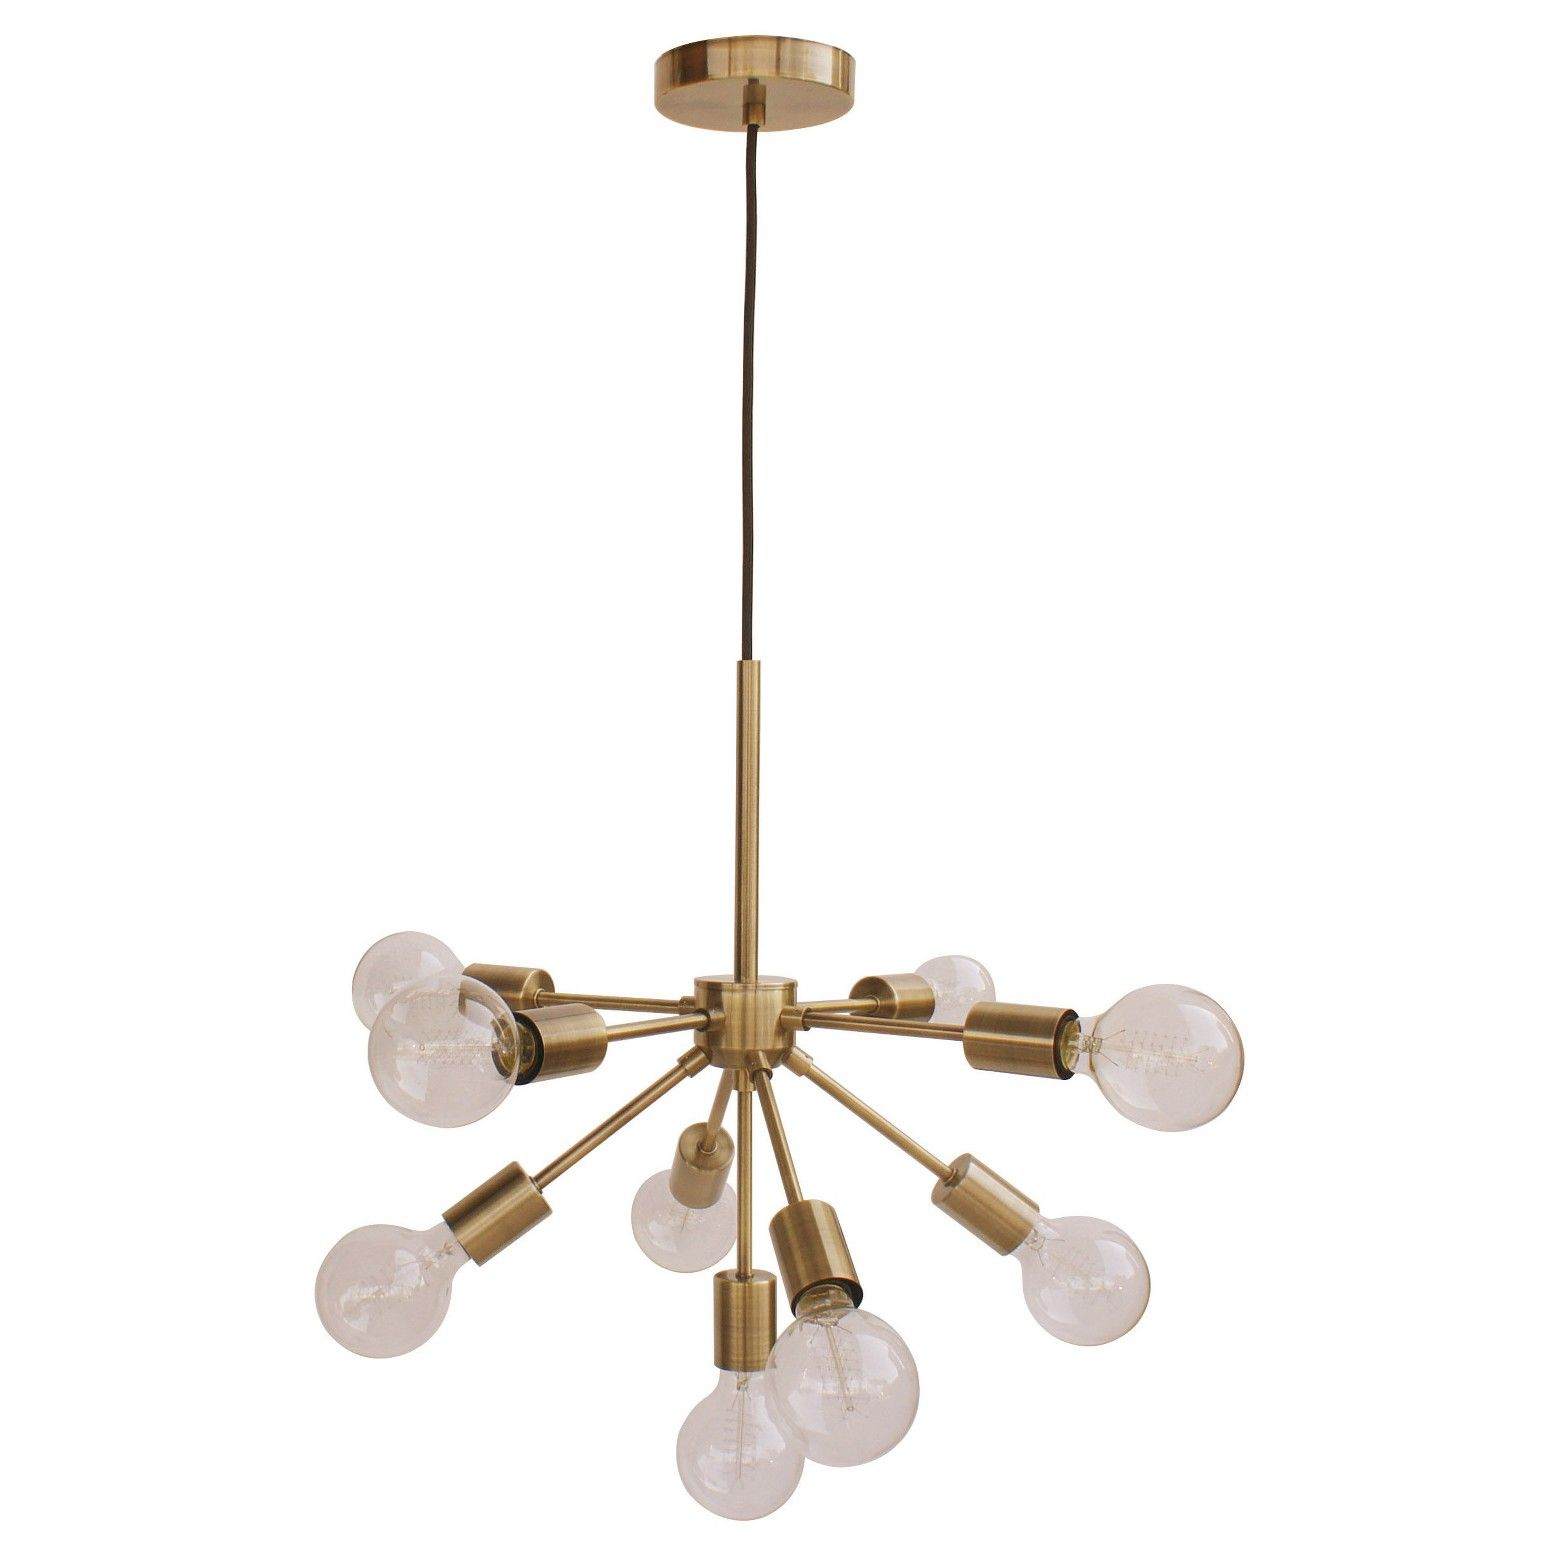 Menlo Asterisk Ceiling Light Brass Project 62 Ceiling Lights